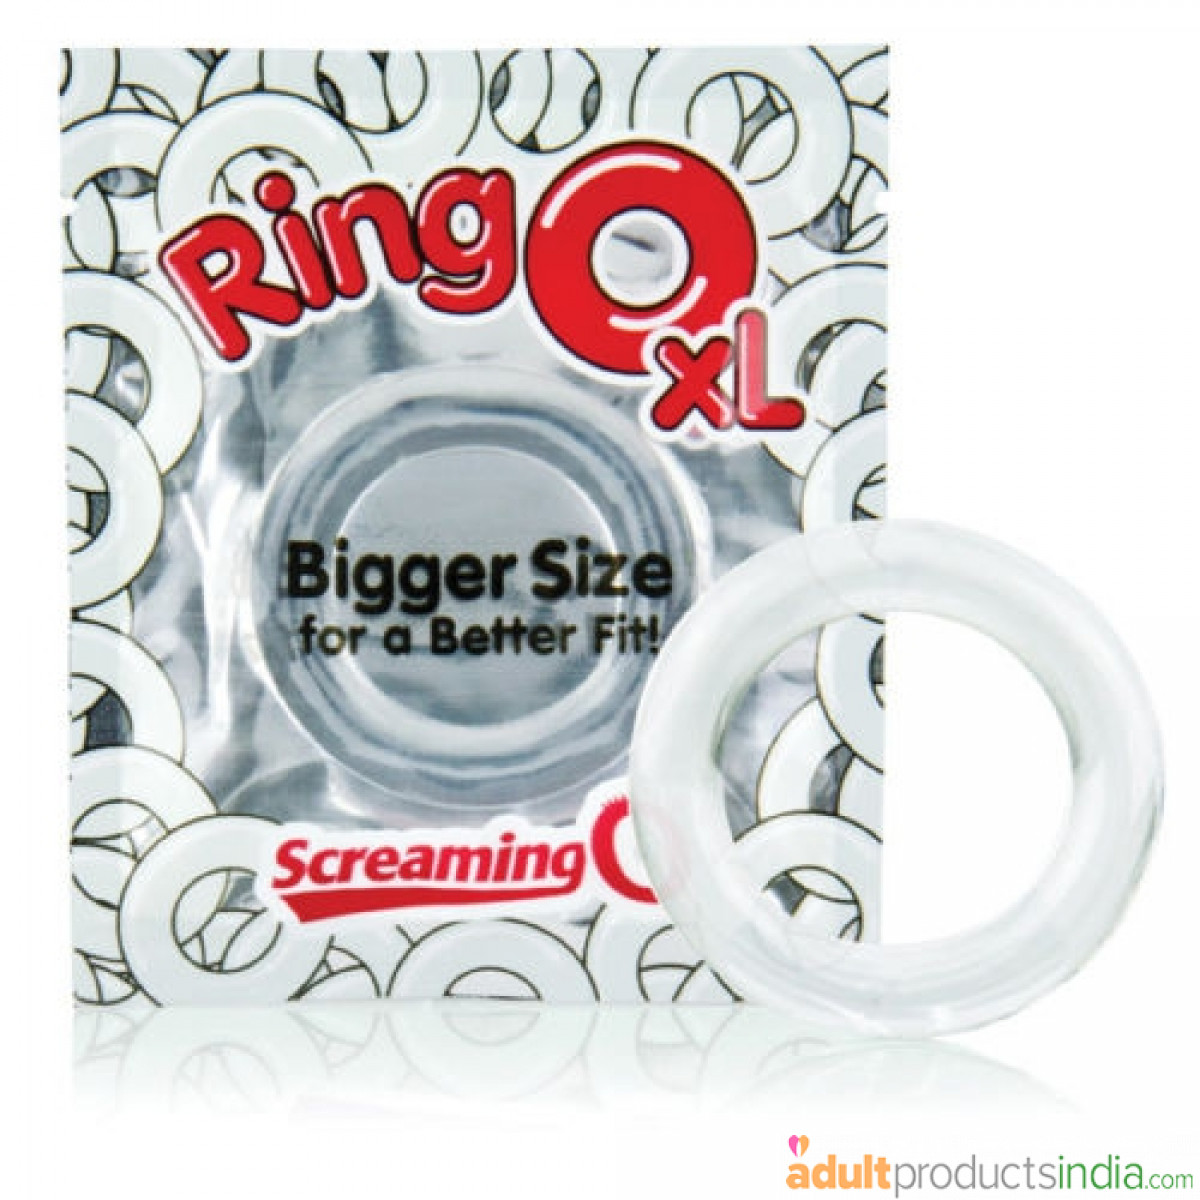 RING O SILICONE XL COCK RING CLEAR SCREAMING O